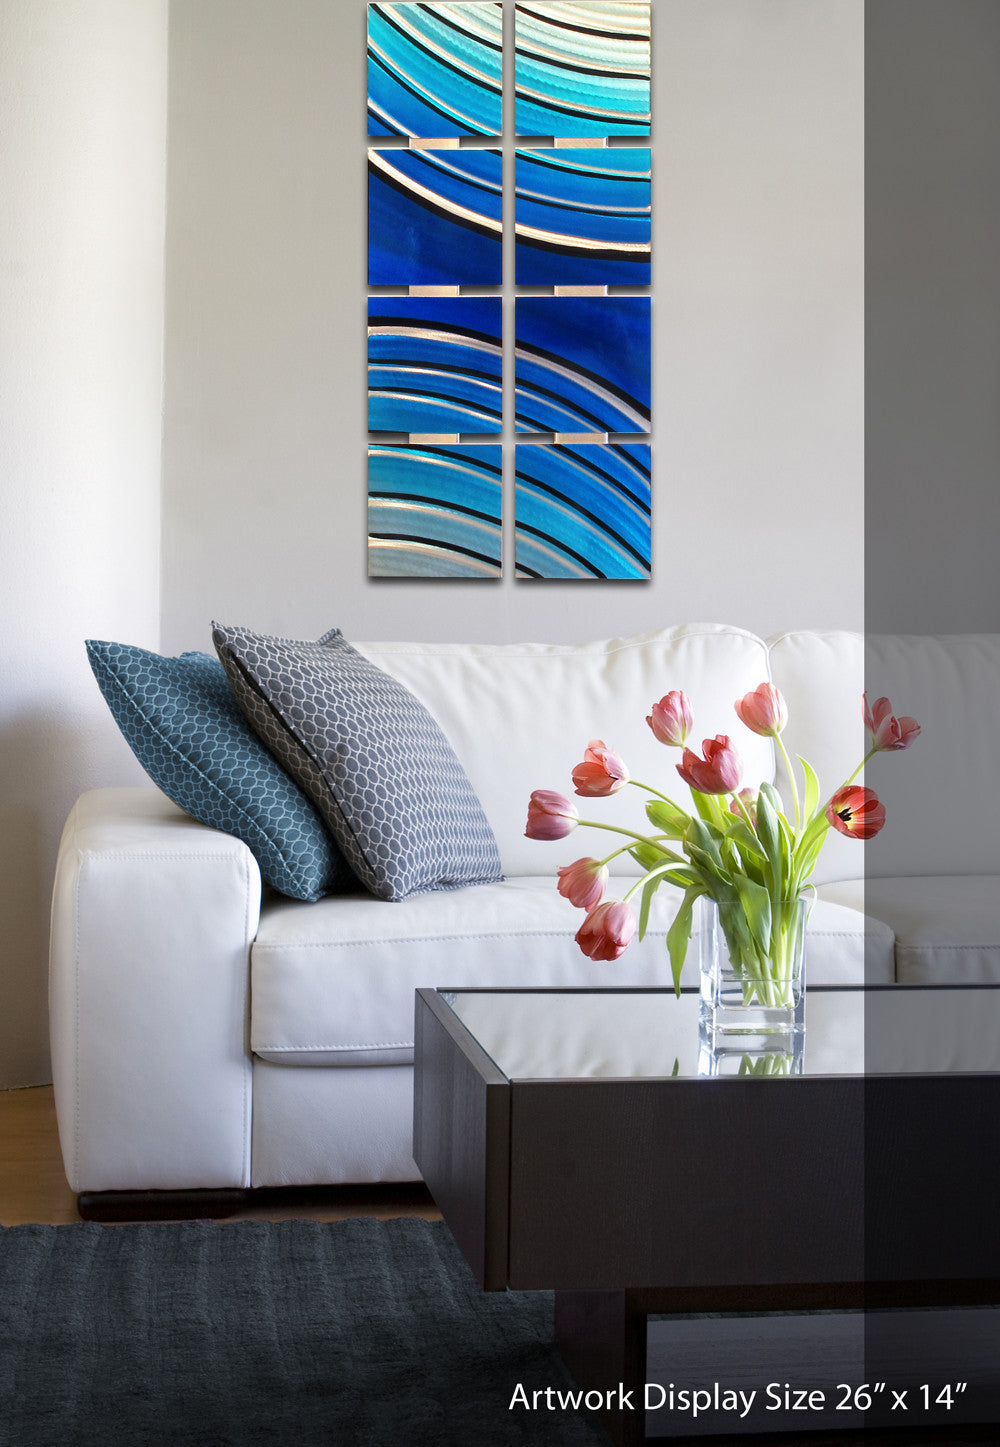 Metal Wall Decorations For Living Room Bloom 68x24 Large Silver Modern Abstract Metal Wall Art